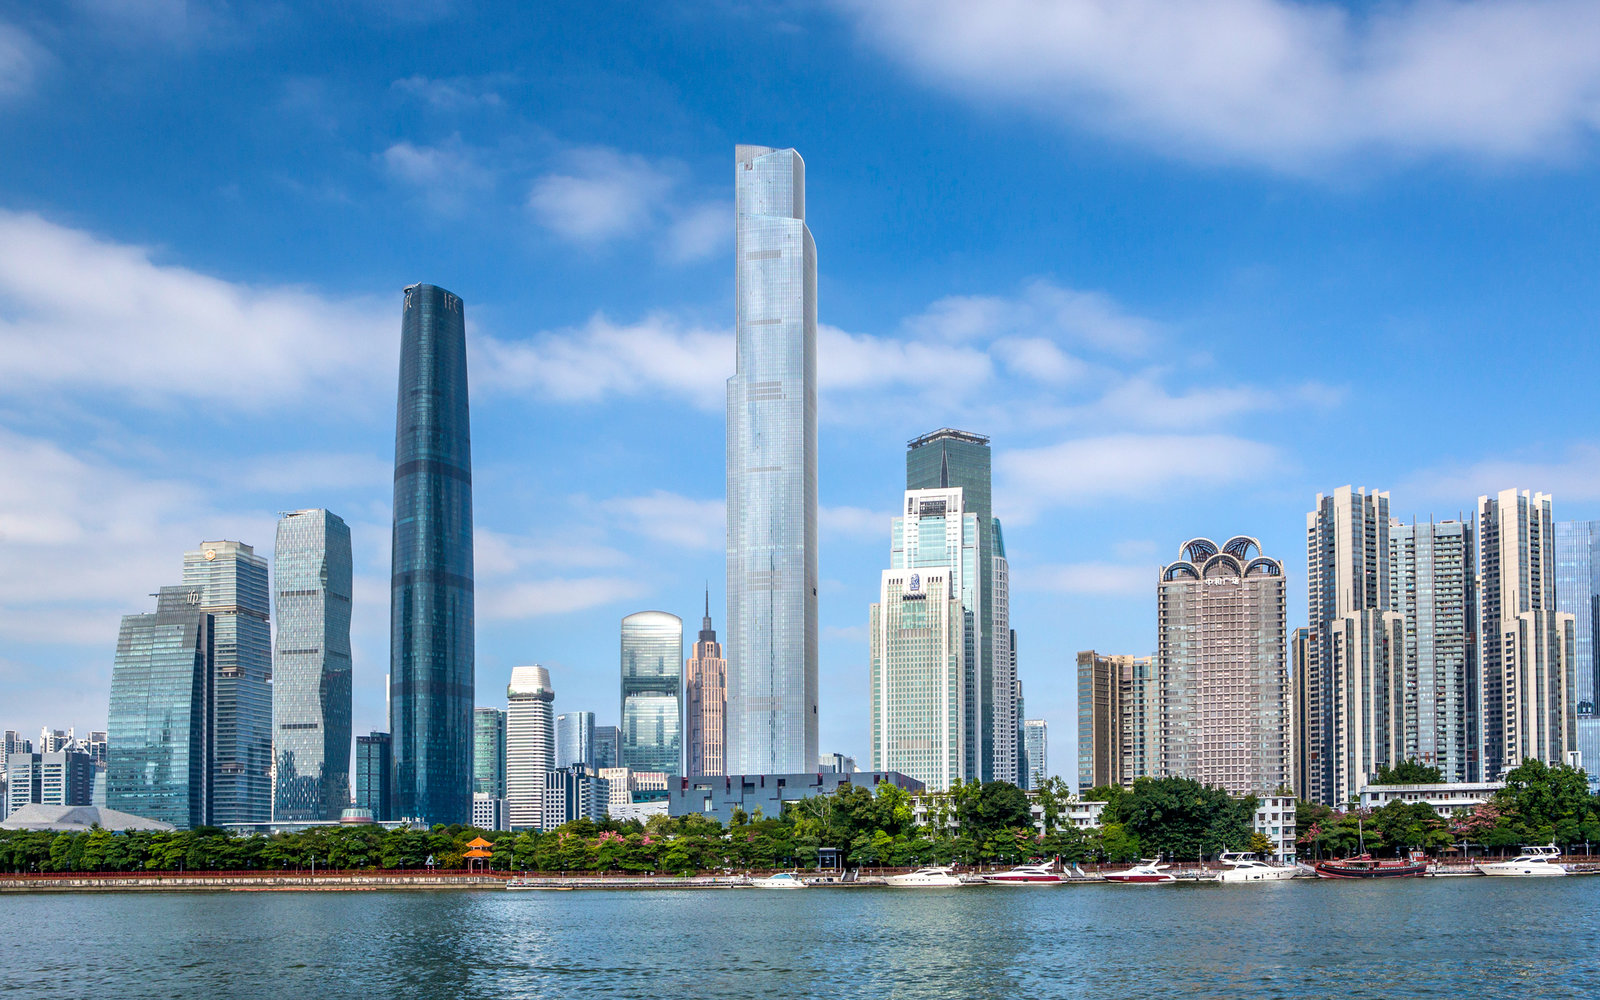 Wuyan New Town IFC Building and East Tower